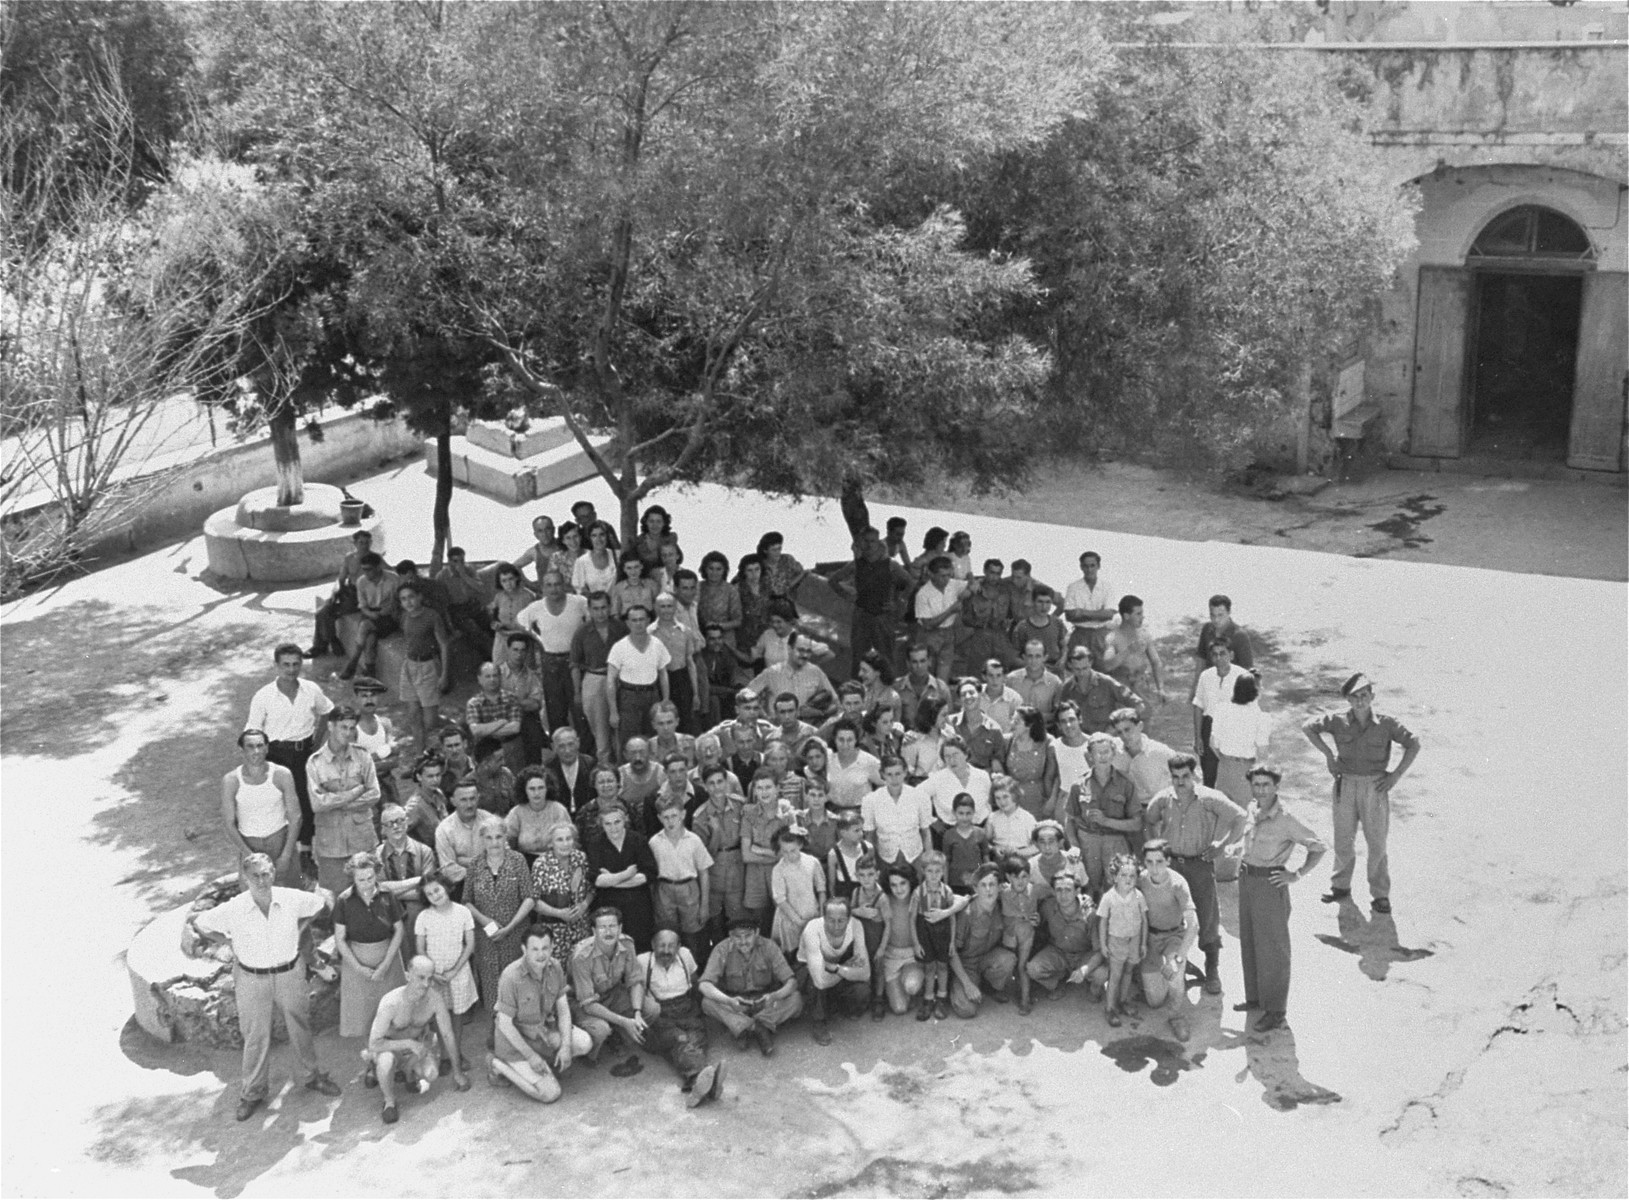 Group portrait of Jewish DPs who have trained at an hachshara in Italy awaiting transport to Palestine.